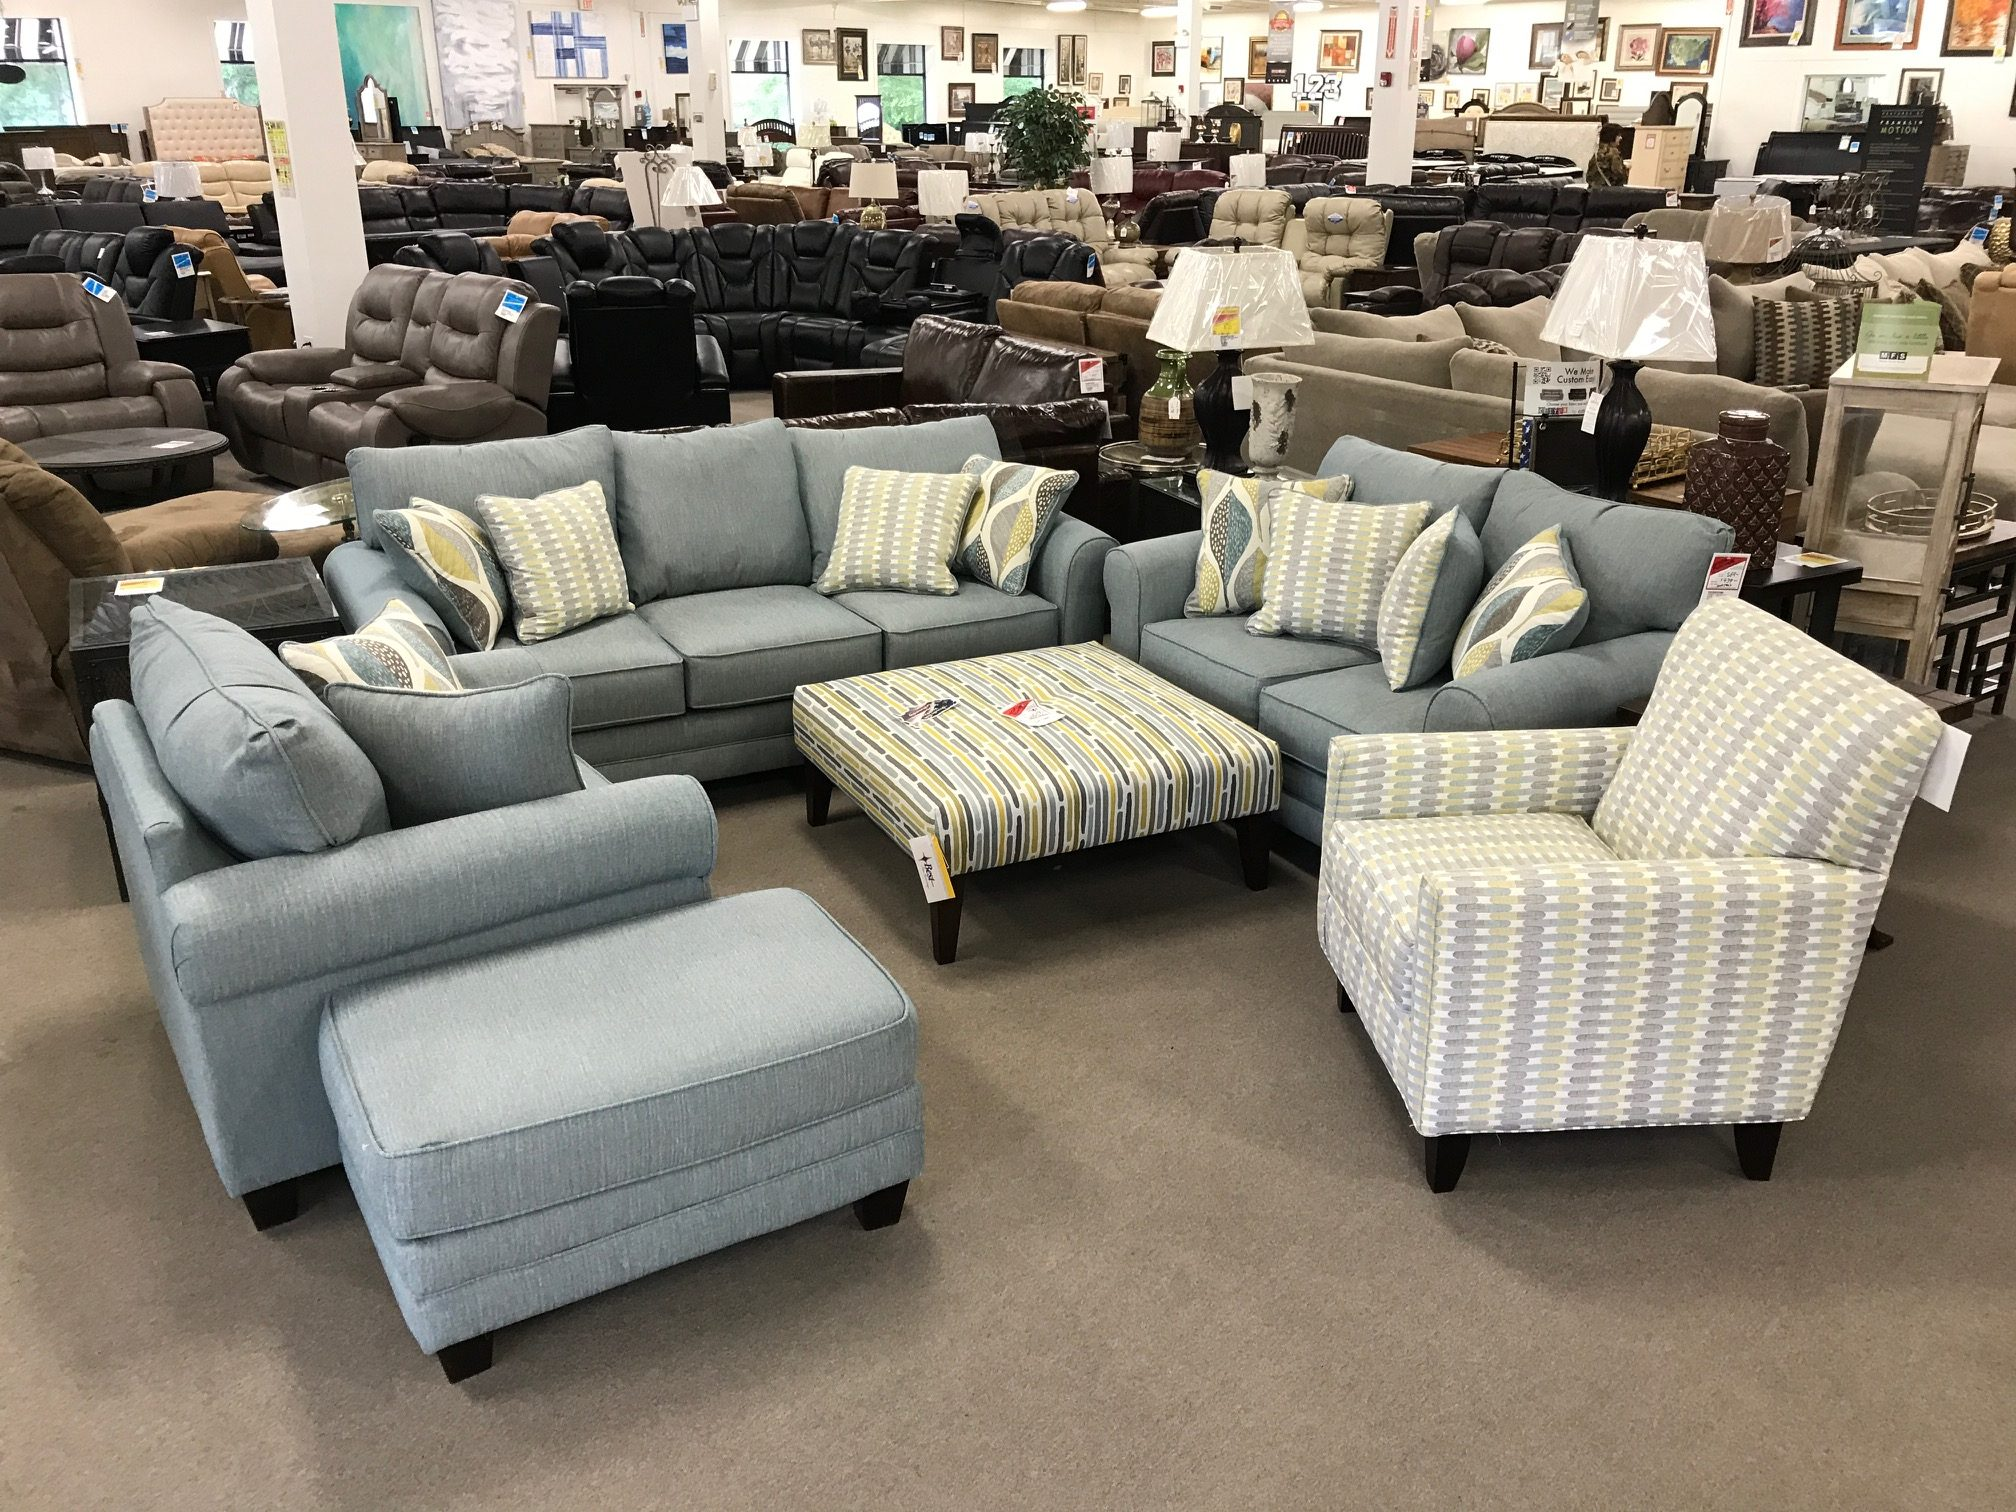 Decade Aqua Patterned Living Room Set Heavner Furniture Market